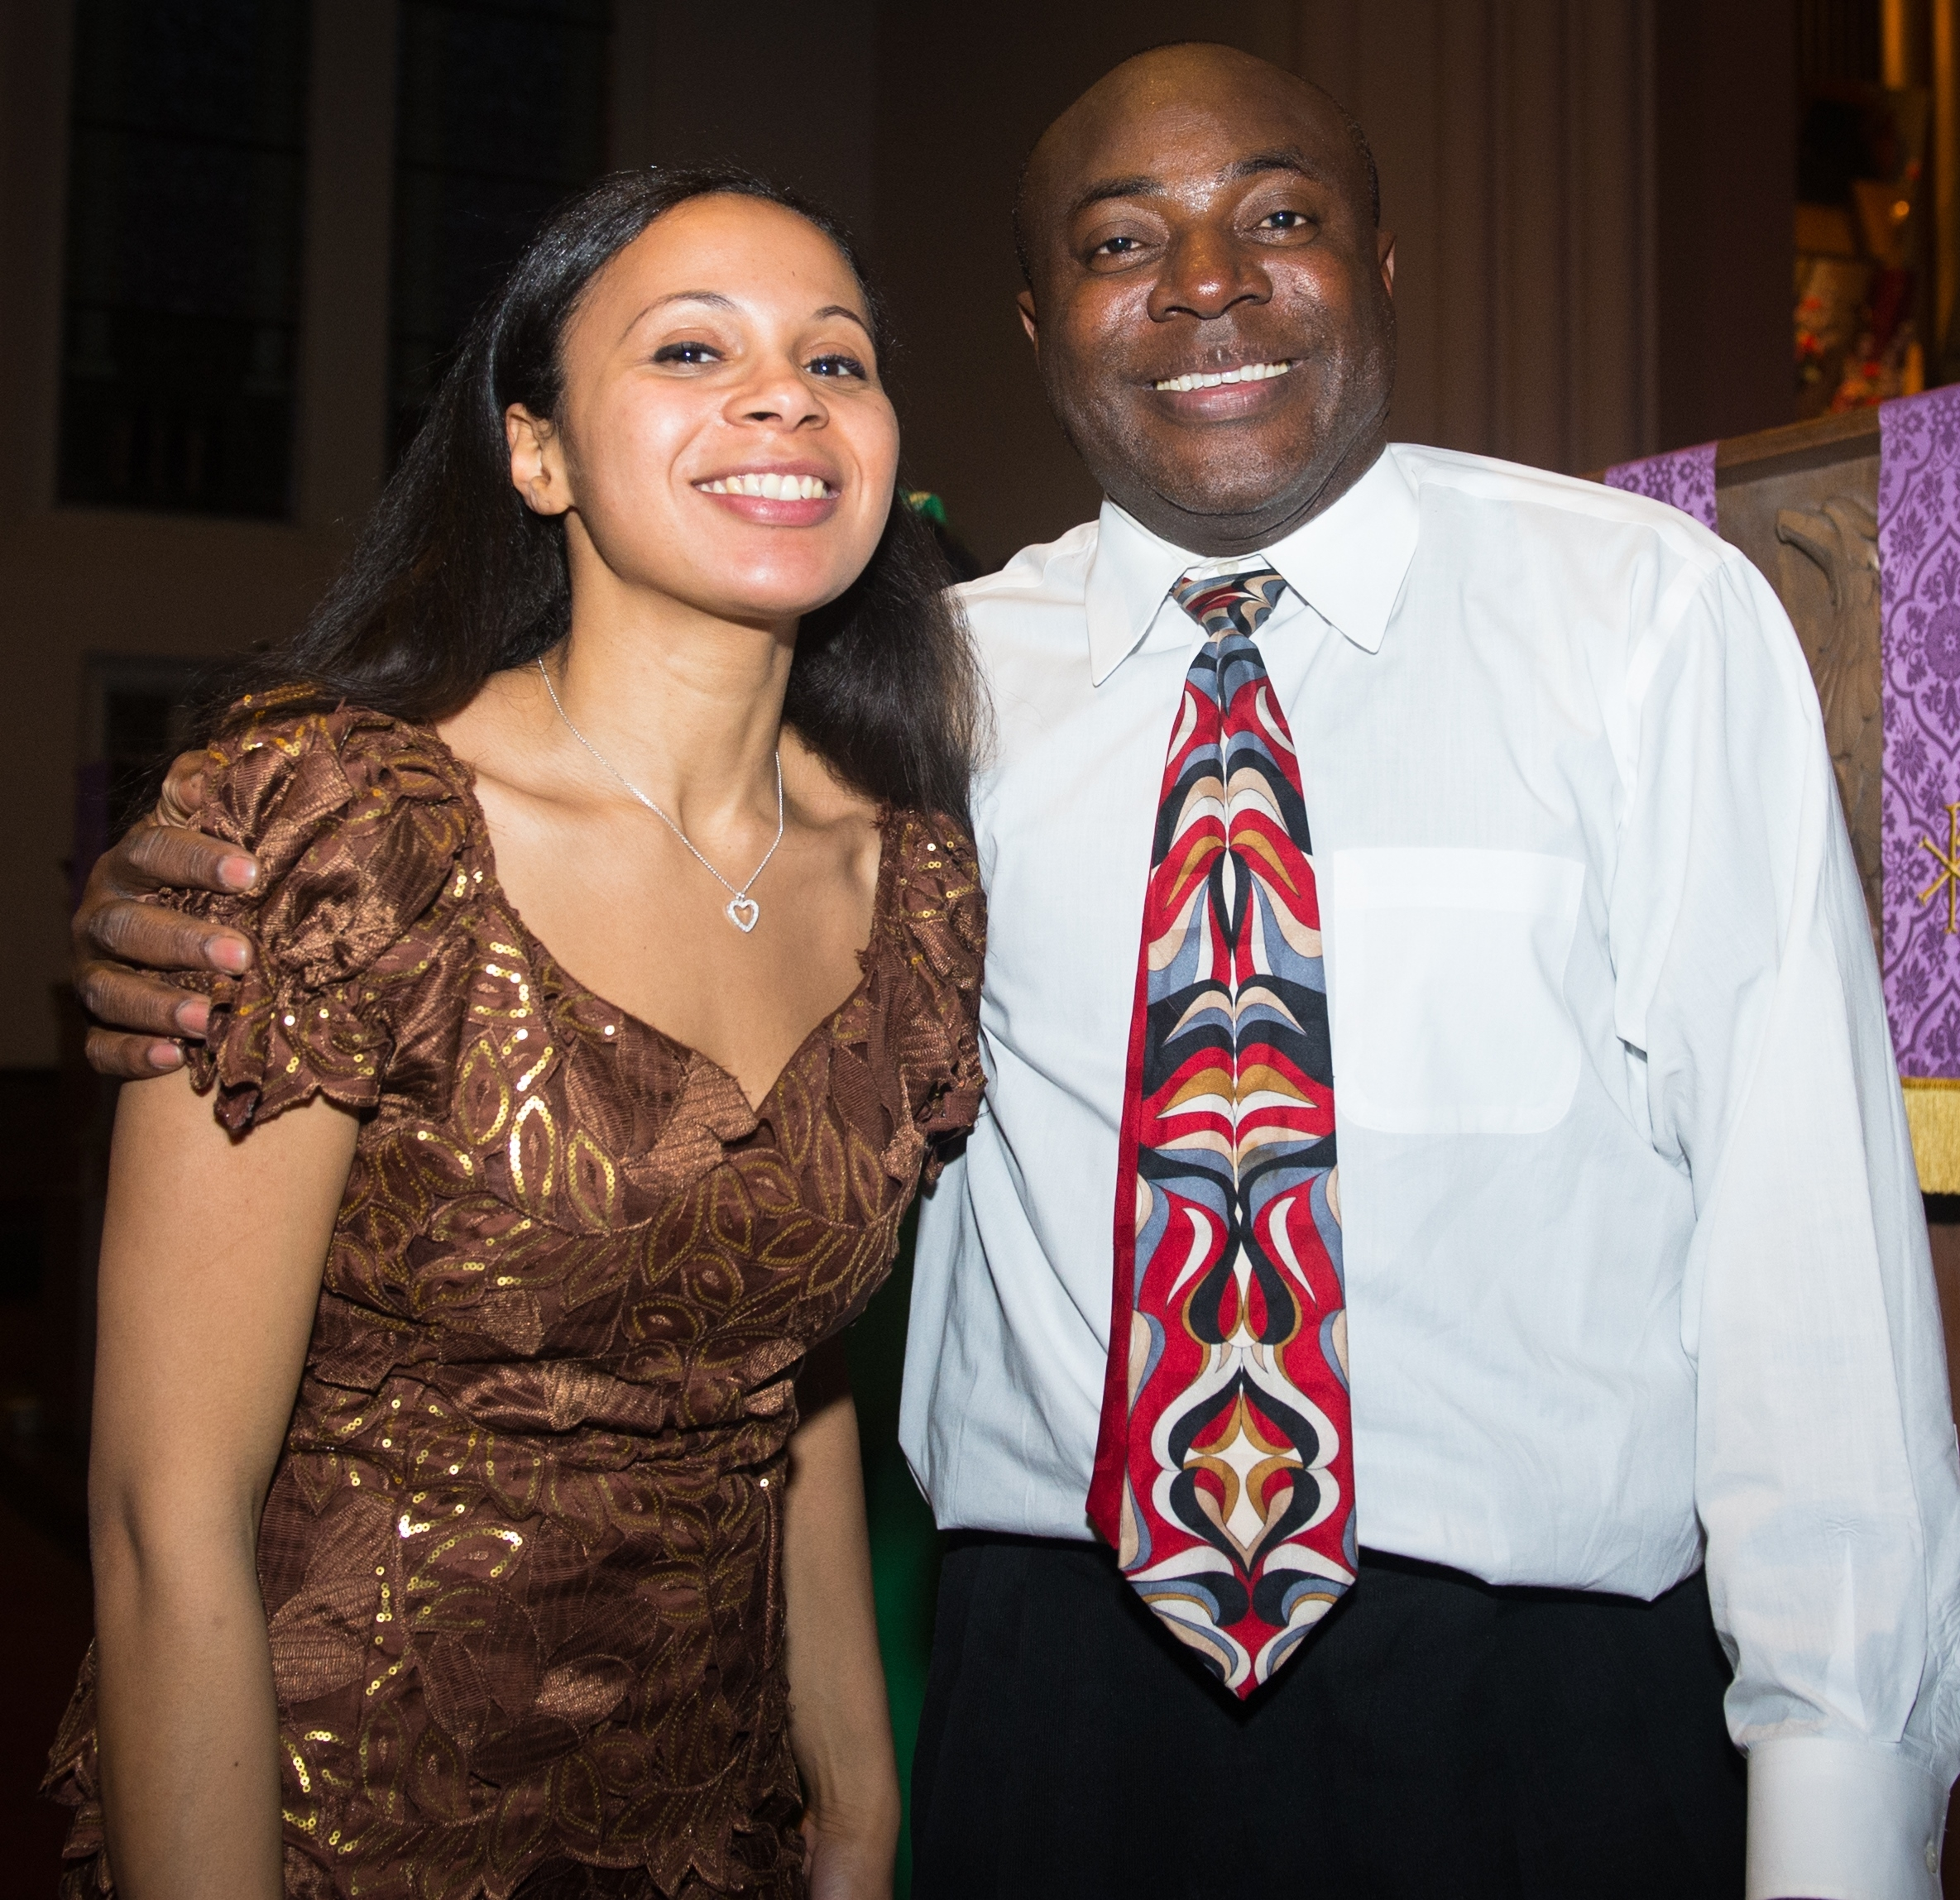 Rebeca Omordia and composer Fred Onovwerosuoke